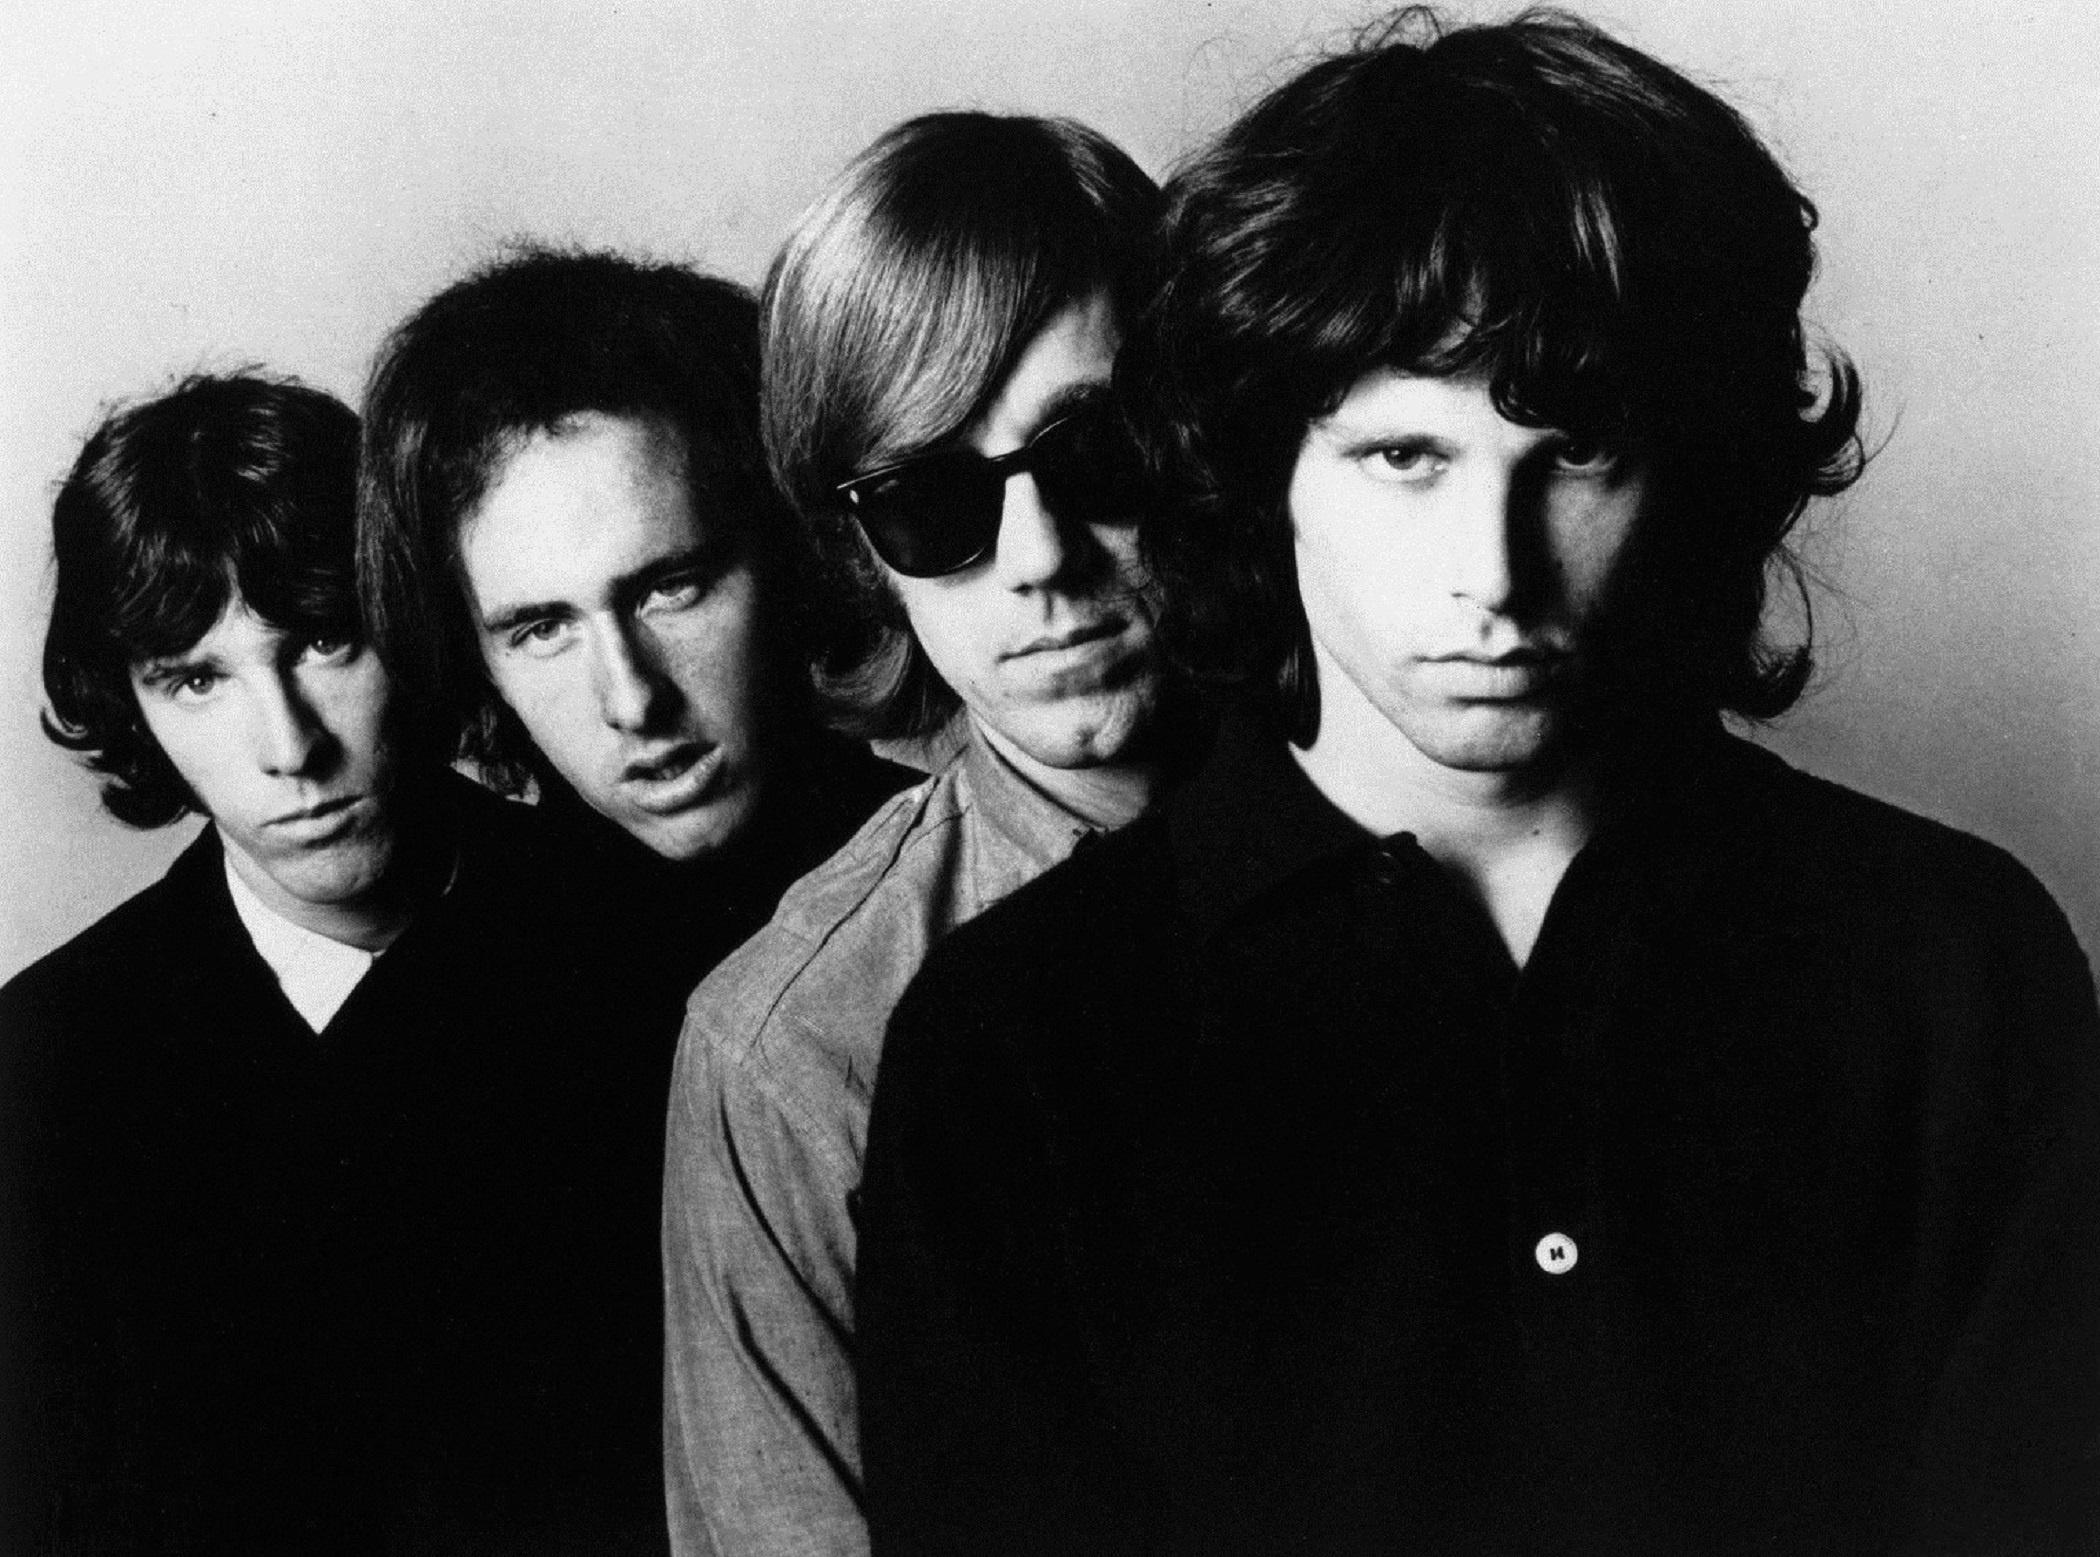 The Doors u2013 Roadhouse Blues  sc 1 st  Classic Rock Videos! & The Doors u2013 Roadhouse Blues u2013 Classic Rock Videos!